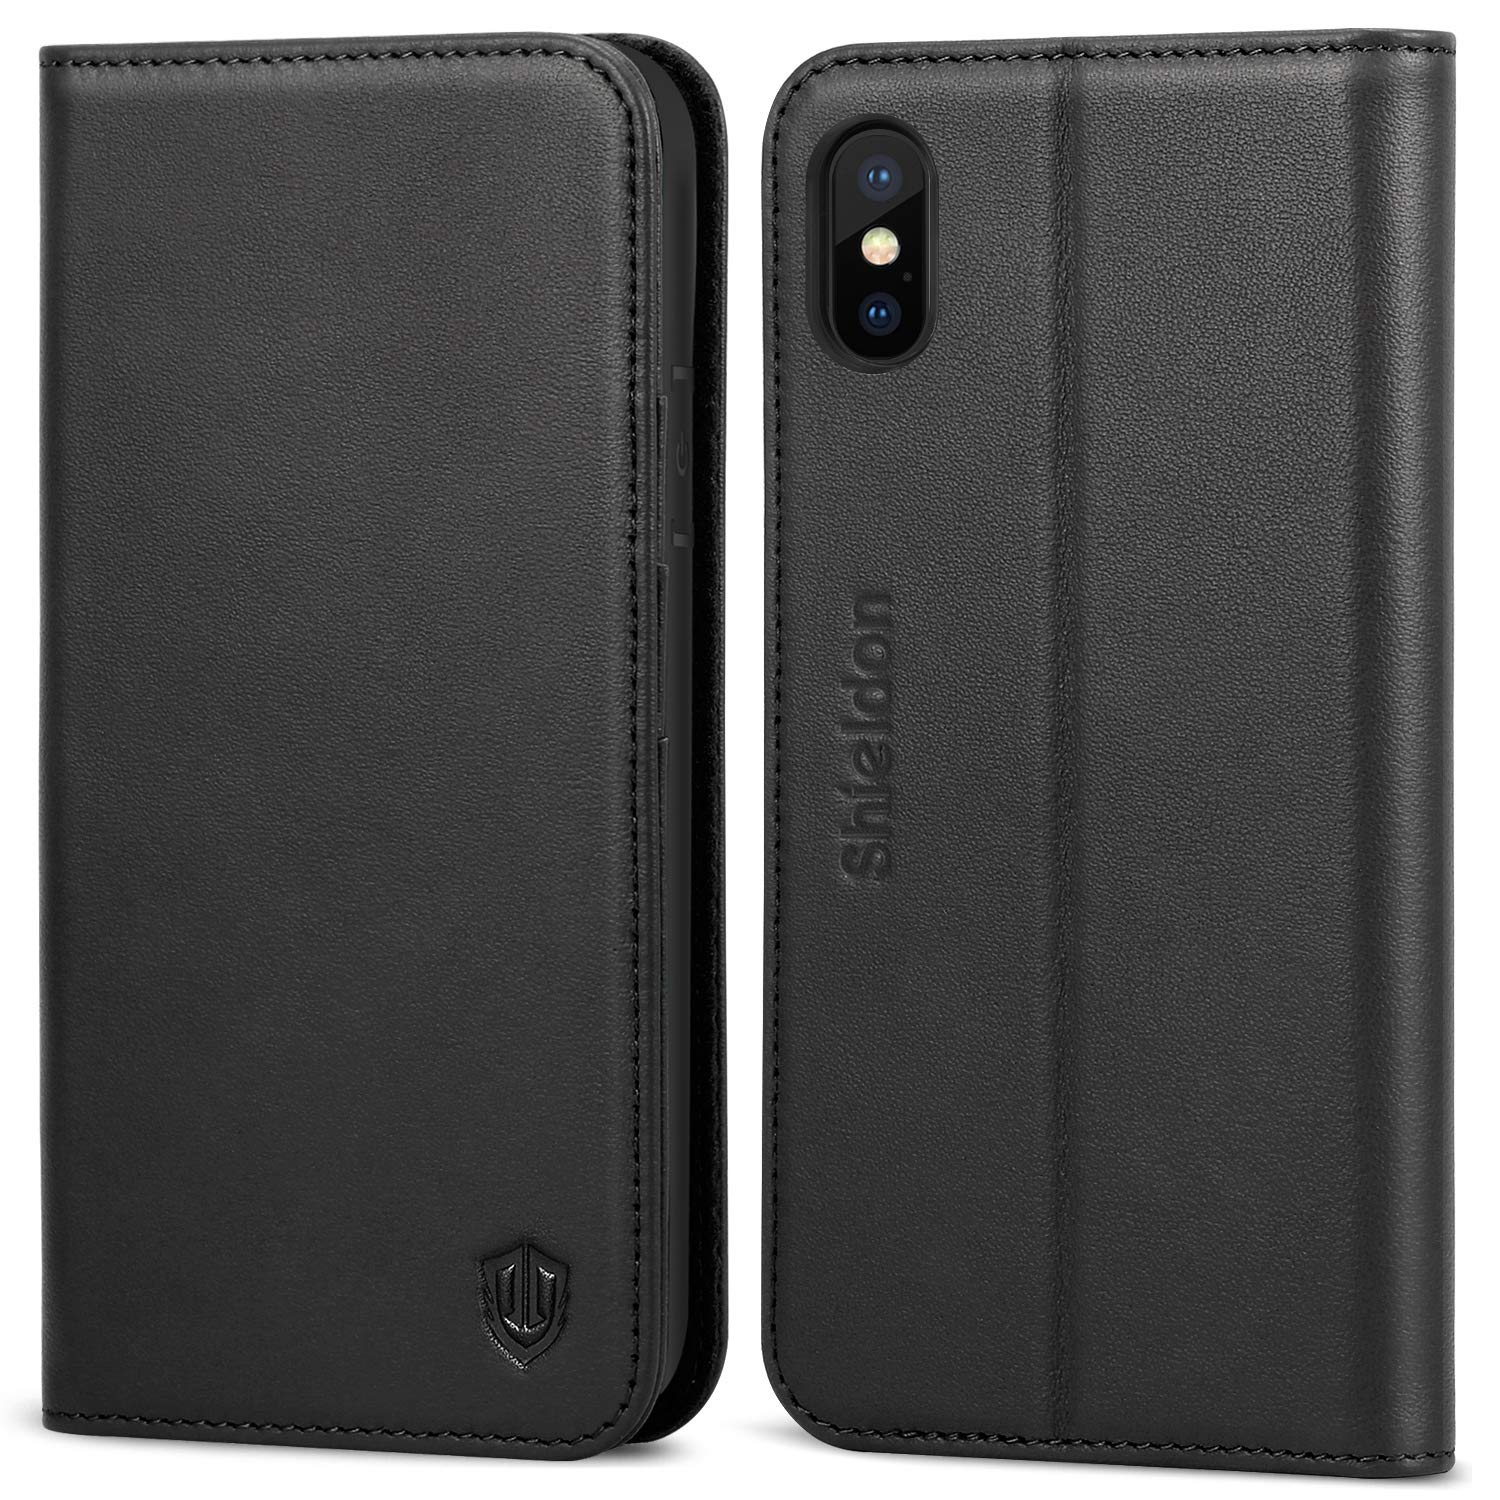 iPhone Xs Case, SHIELDON Genuine Leather iPhone Xs Wallet Folio Case with Auto Sleep/Wake Function, Magnetic Closure, RFID Blocking Card Slots, Soft Back Cover Compatible with iPhone Xs (2018) - Black